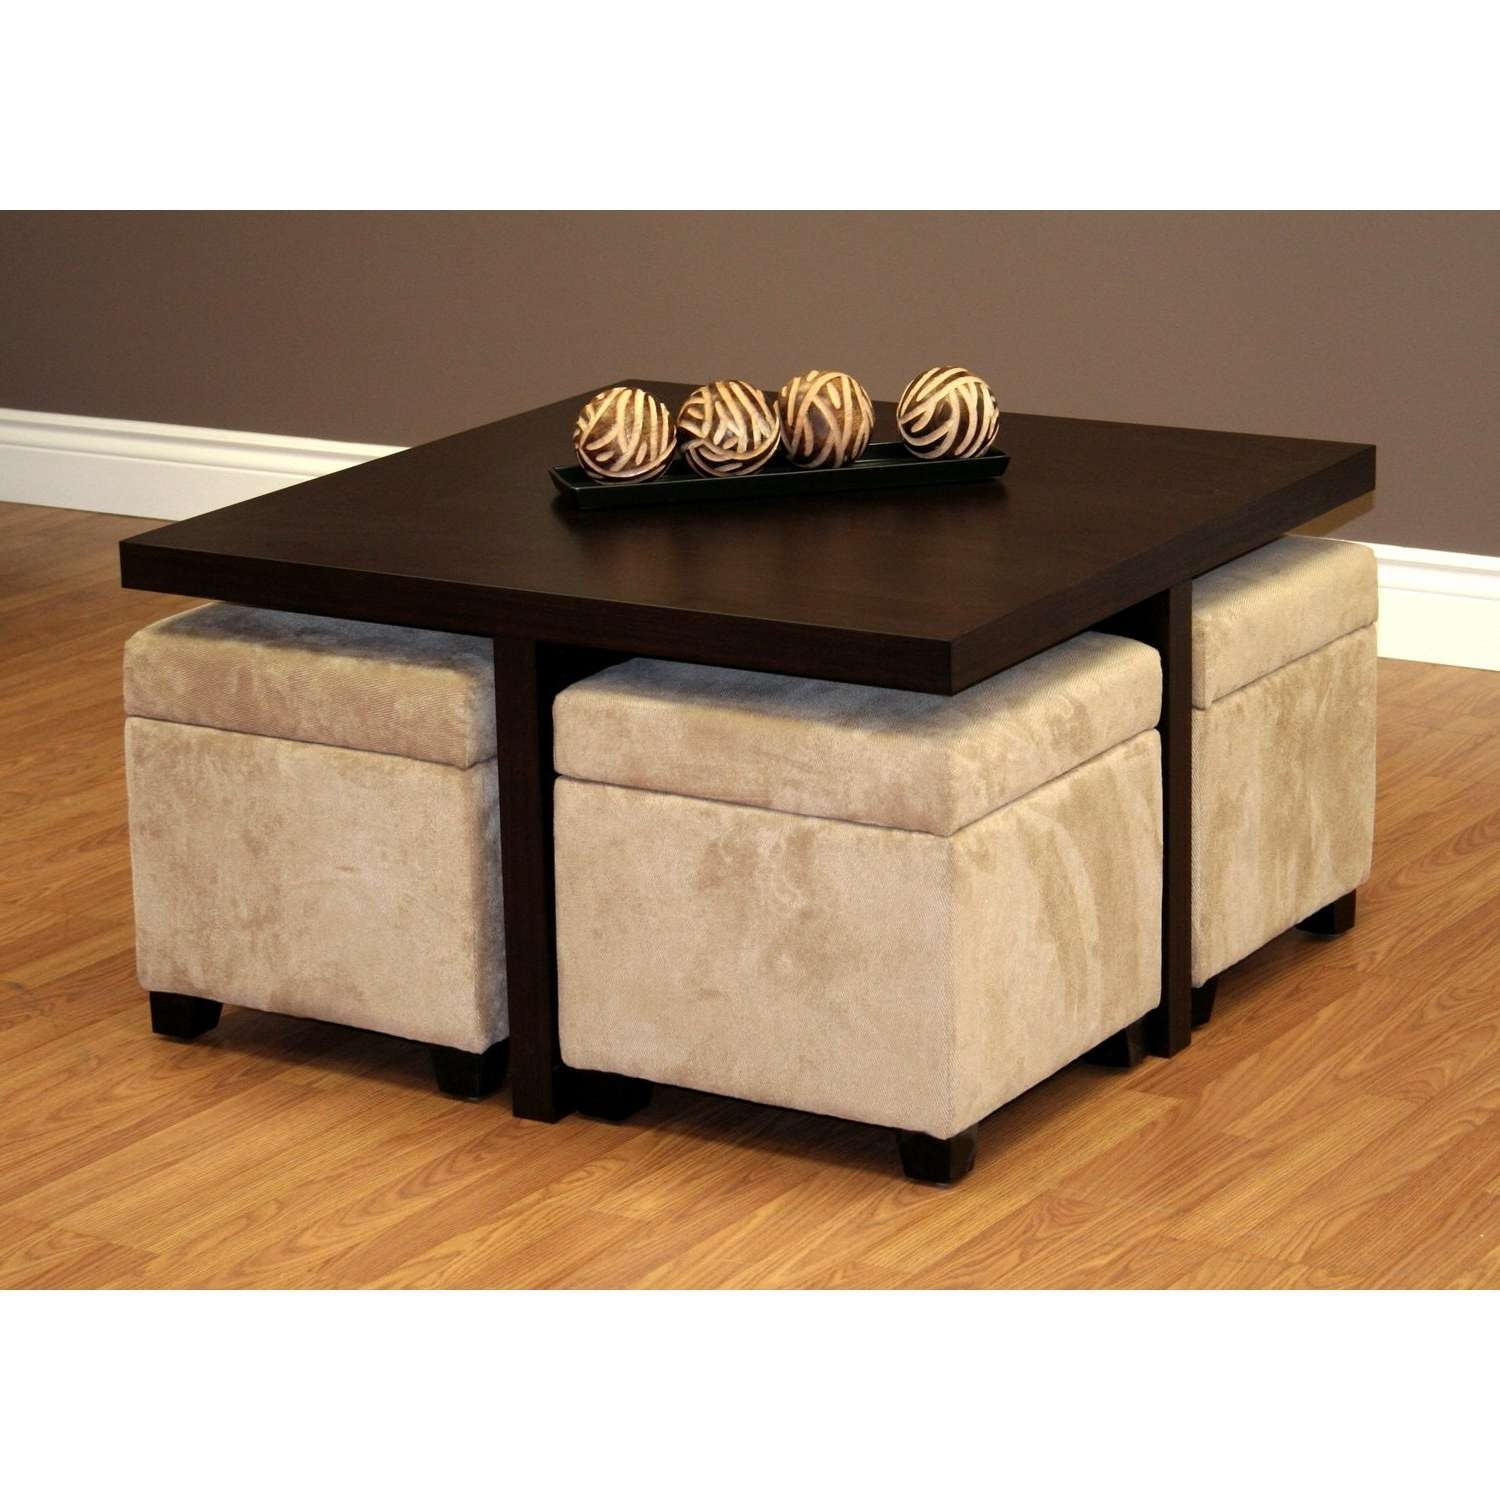 Coffee Table : Amazing Ottoman Coffee Table Amazing Coffee Table Regarding Popular Cheap Coffee Tables With Storage (View 4 of 20)